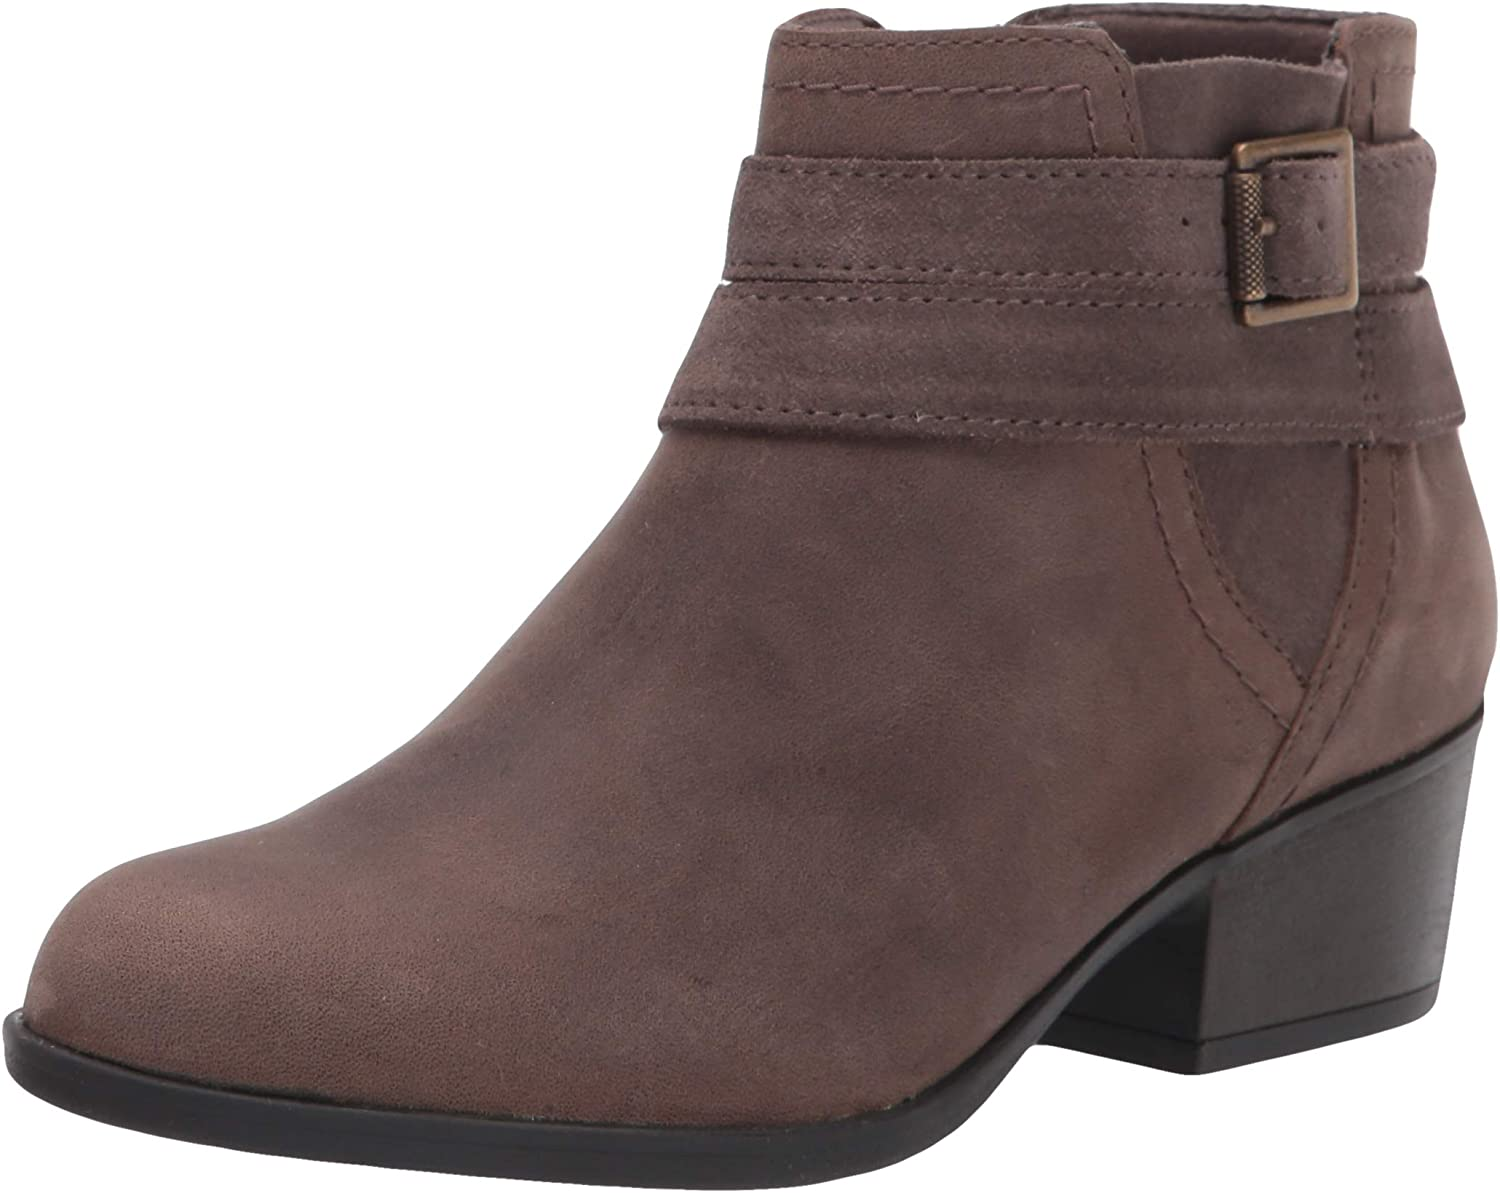 Clarks Branded goods Women's Adreena Ankle New color Show Boot